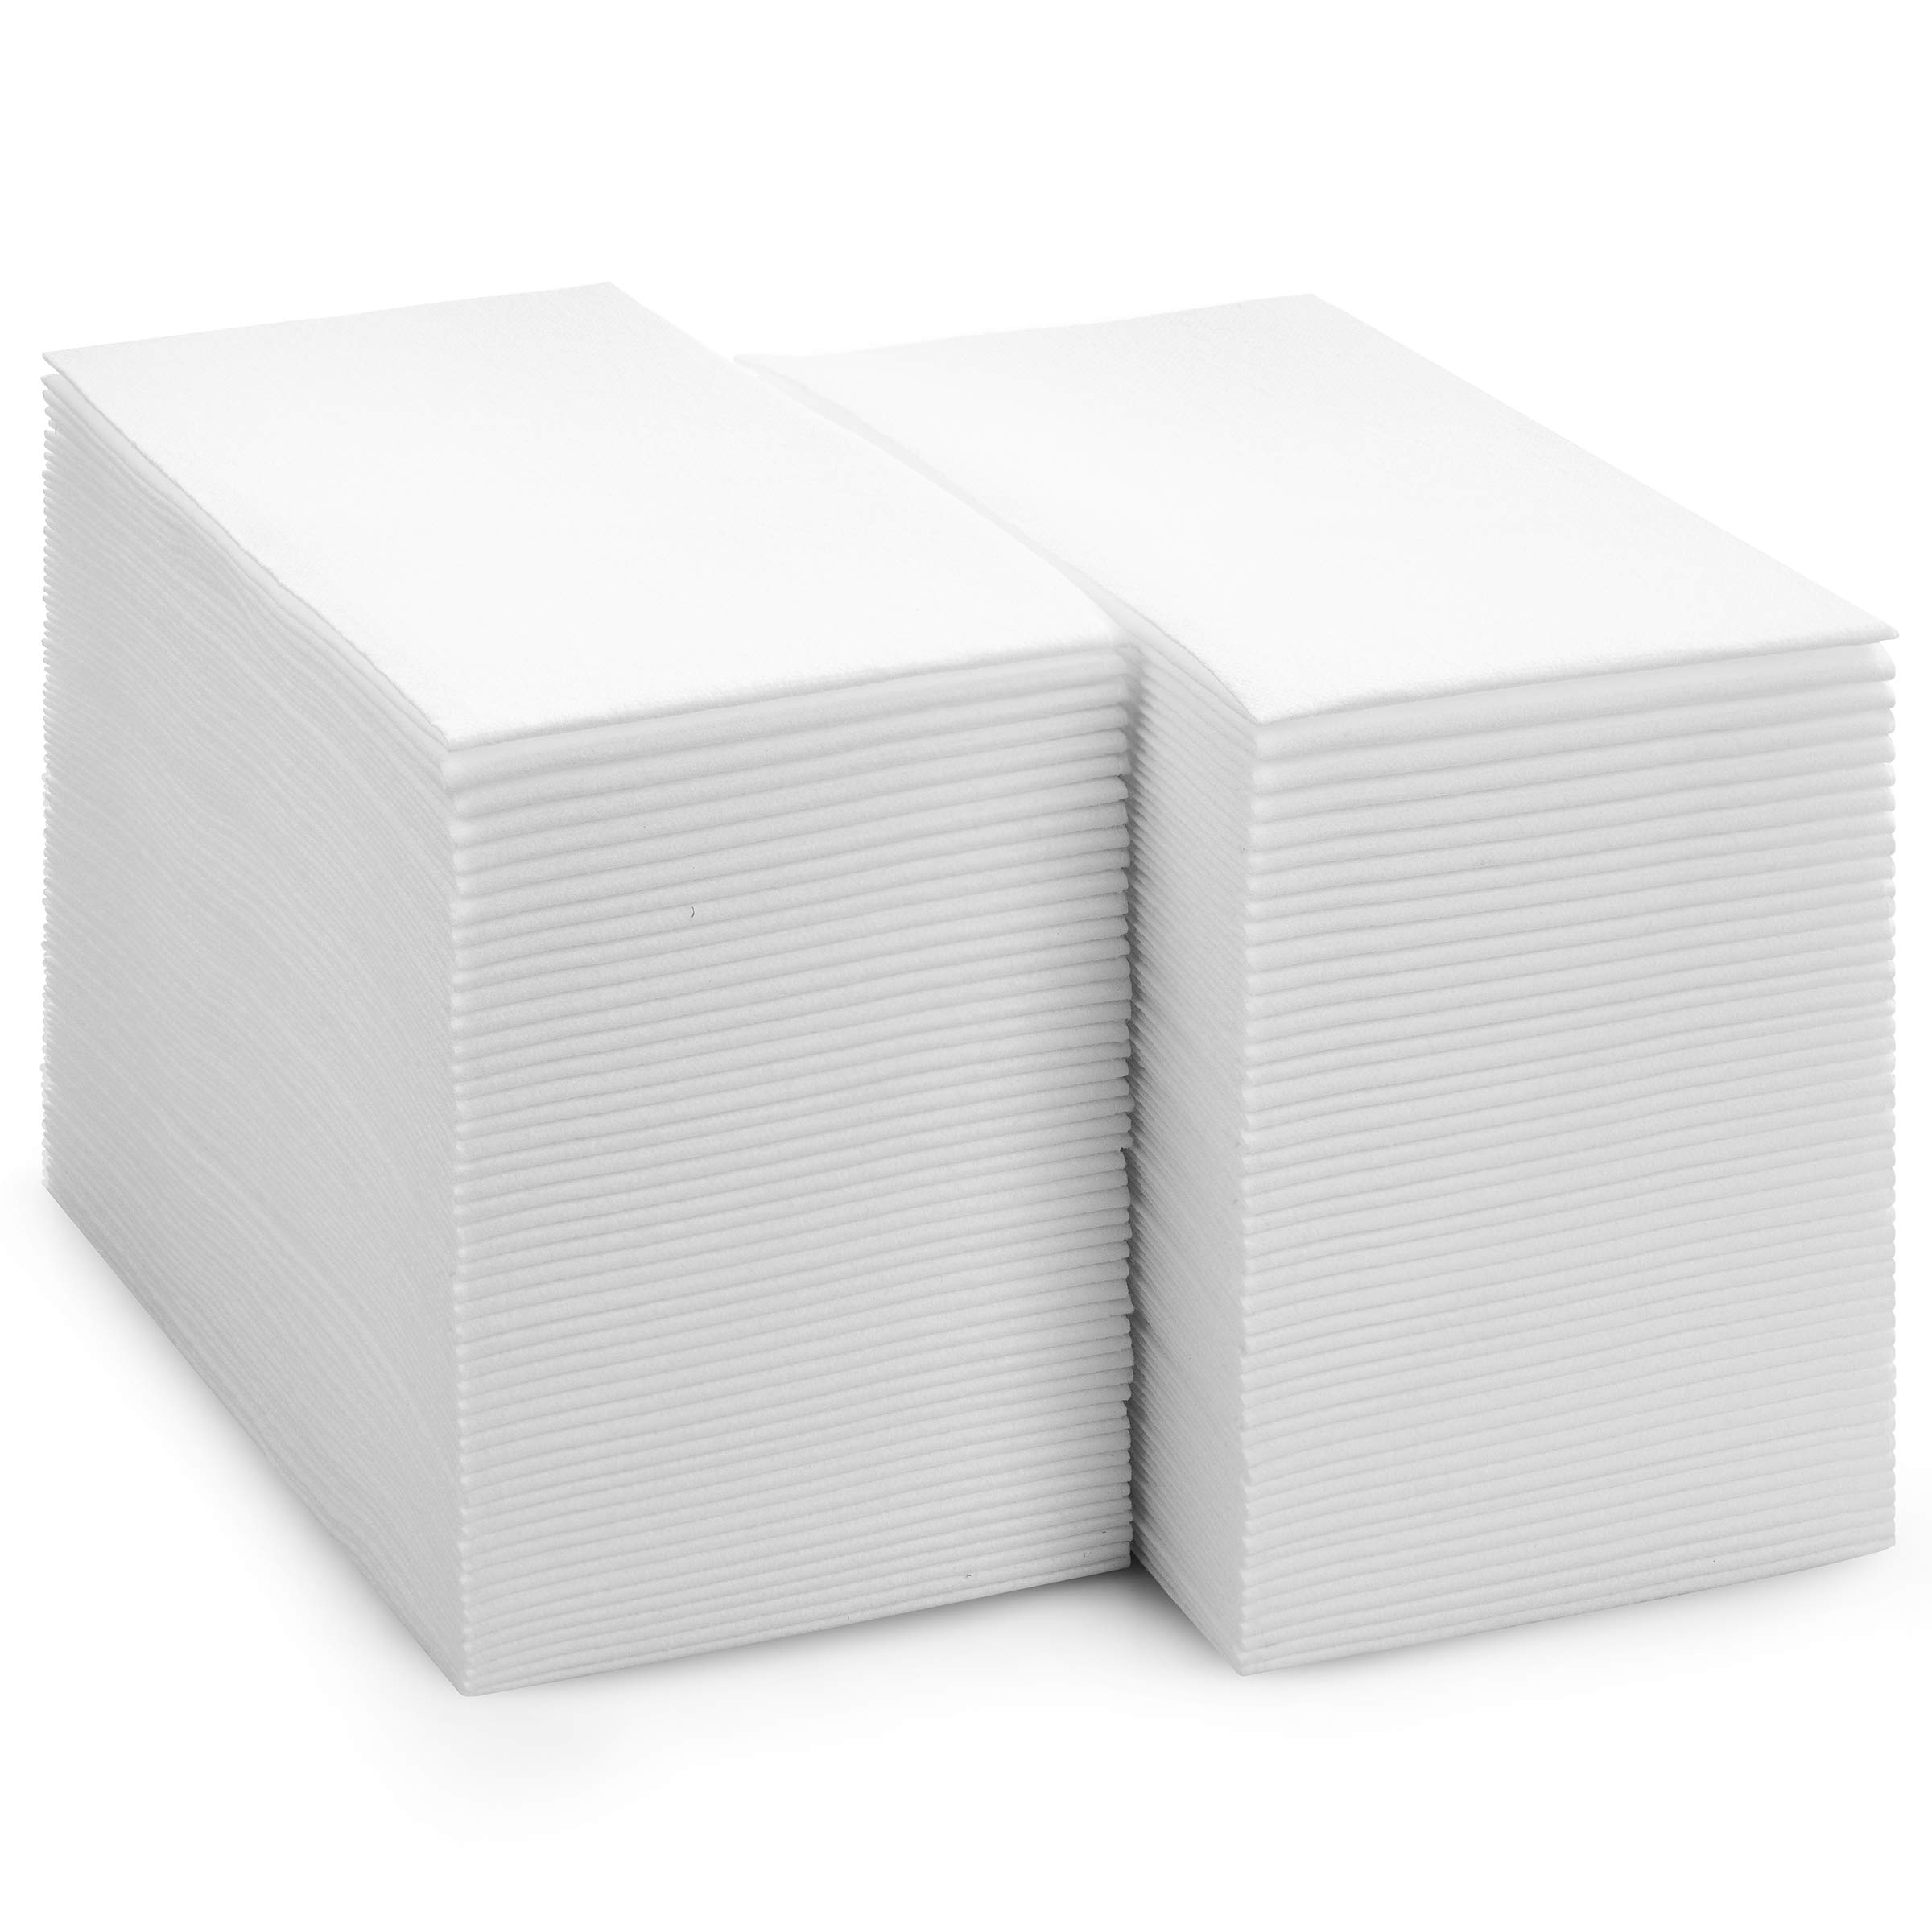 BloominGoods Disposable Bathroom Napkins | Linen-Feel Guest Towels | Cloth-Like Hand Tissue Paper, White (Pack of 100)